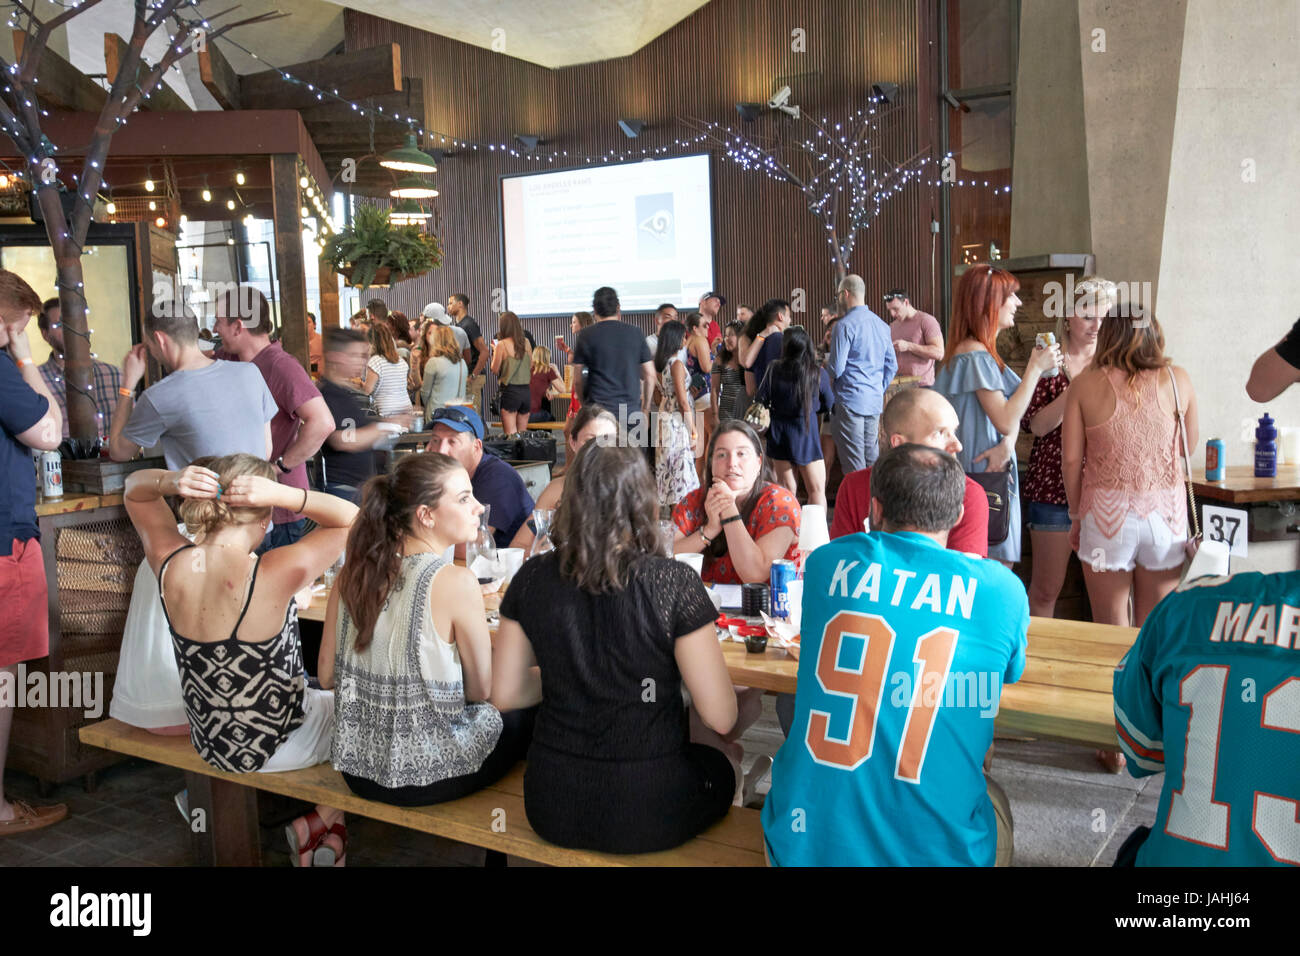 sports fans in sports bar for the nfl draft 2017 Philadelphia USA - Stock Image